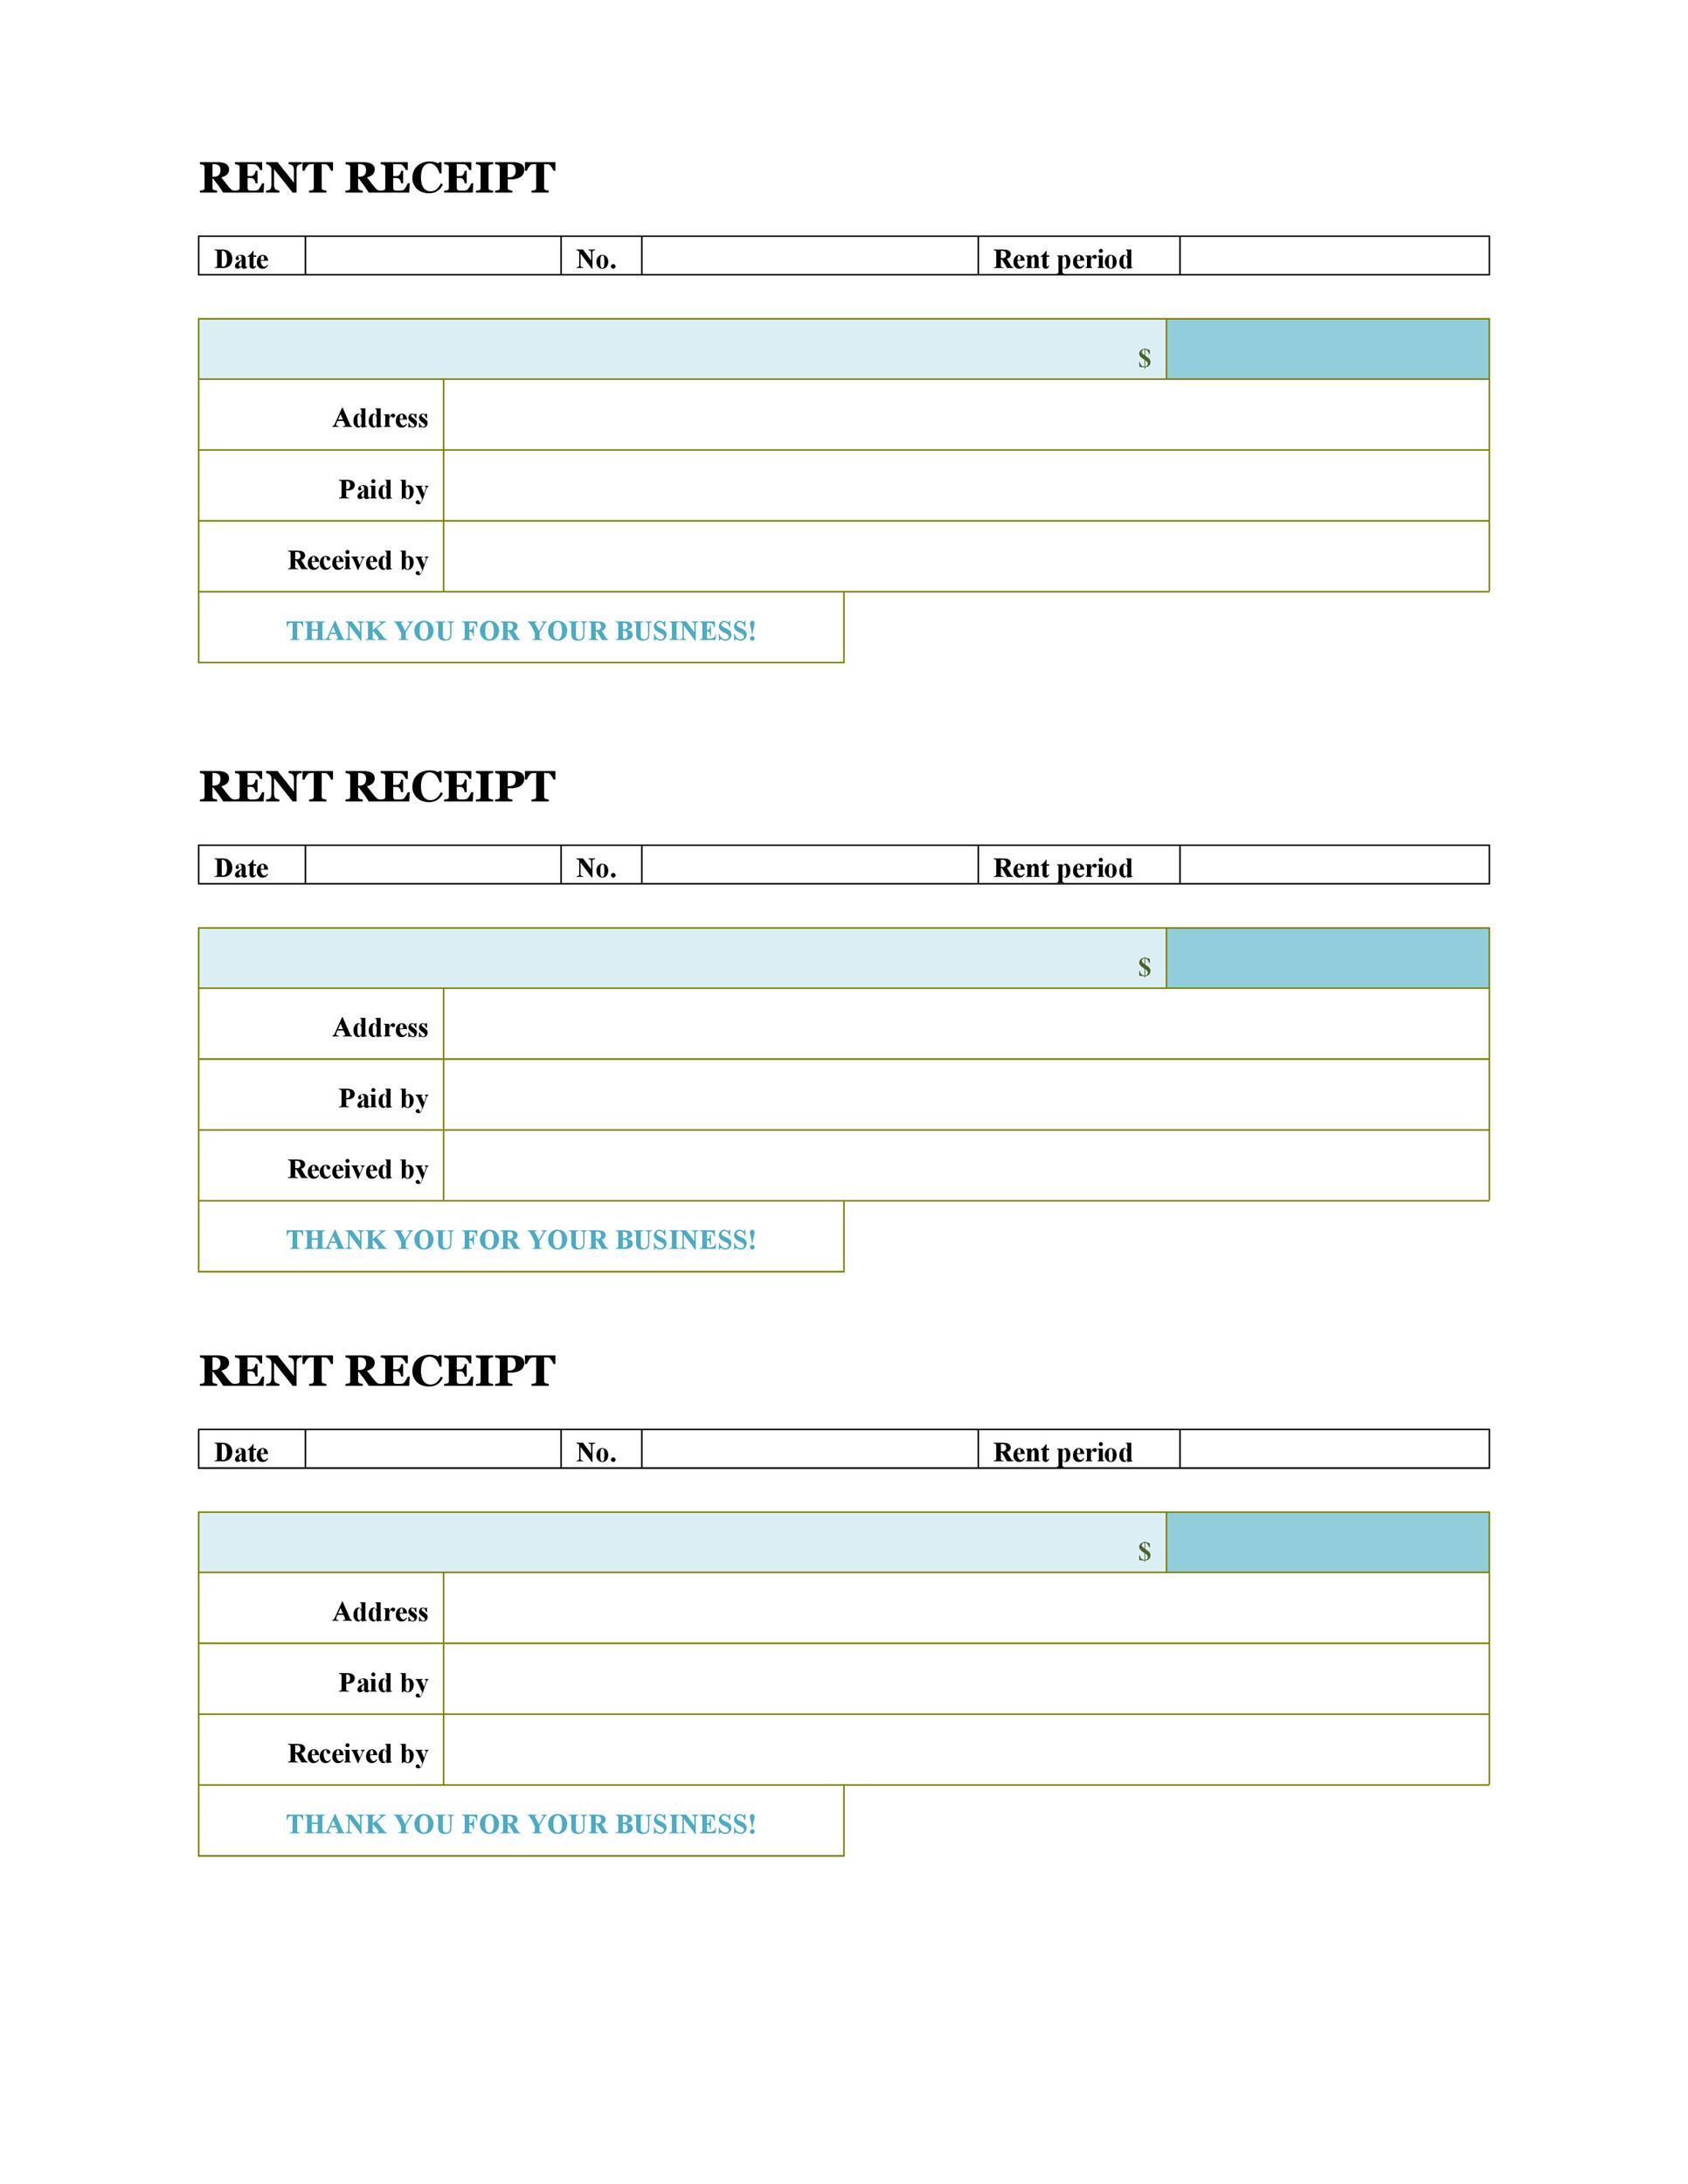 50 Free Receipt Templates Cash Sales Donation Taxi – House Rent Bill Format